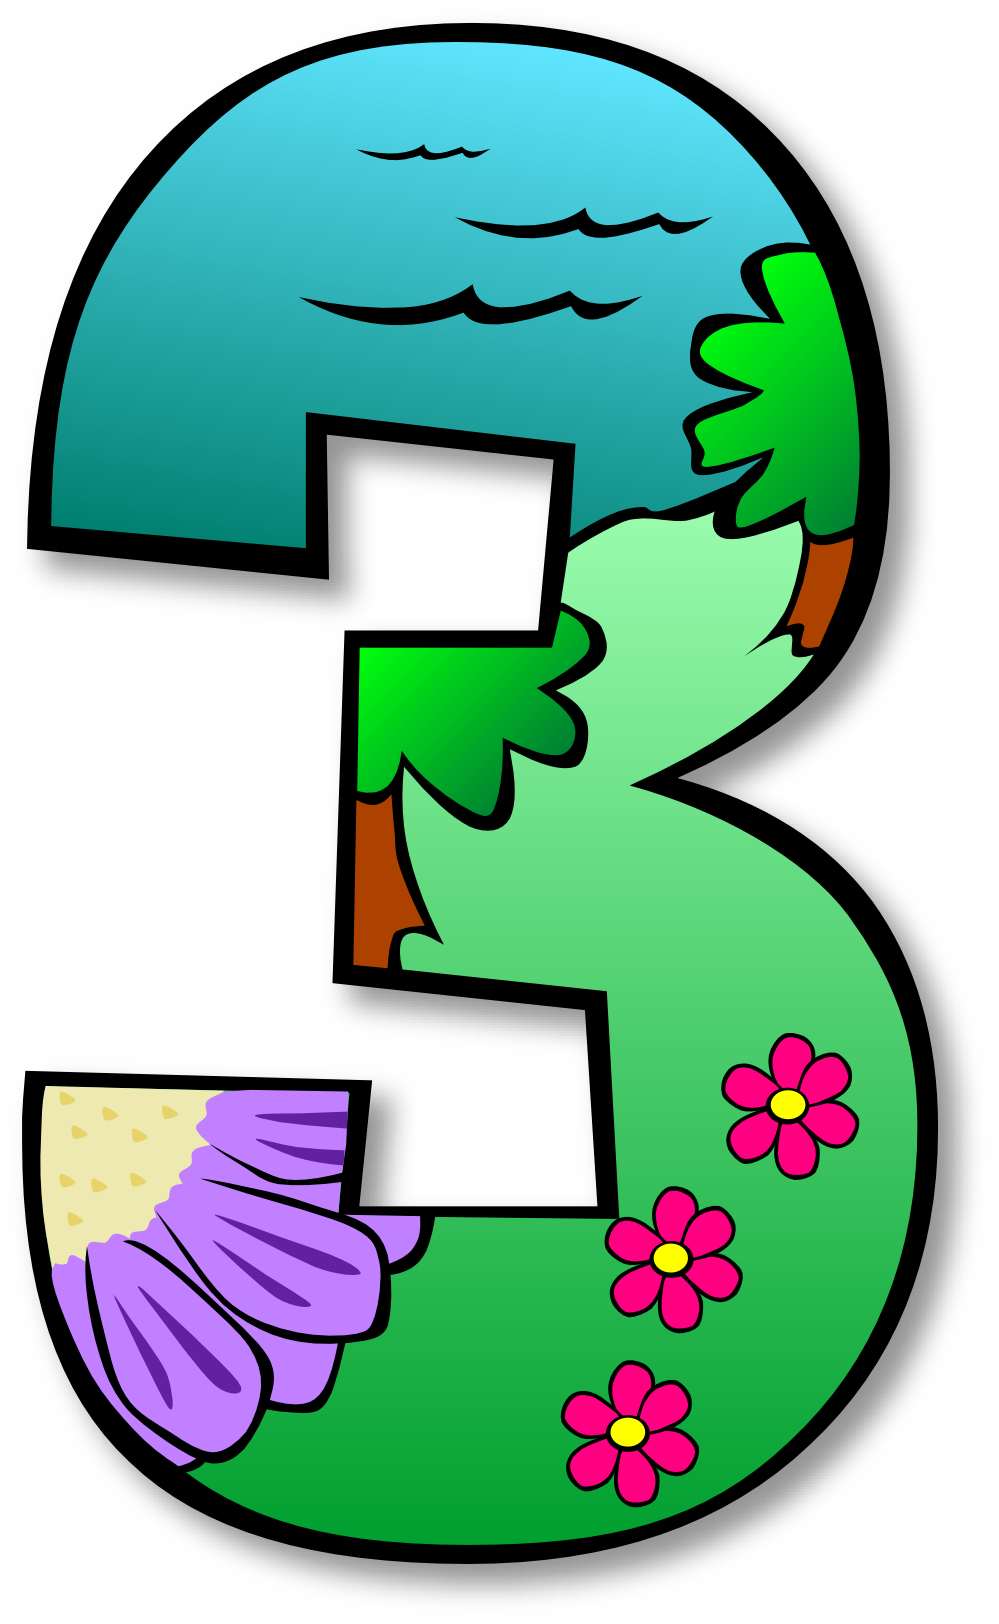 Numbers clipart natural number. Clip art